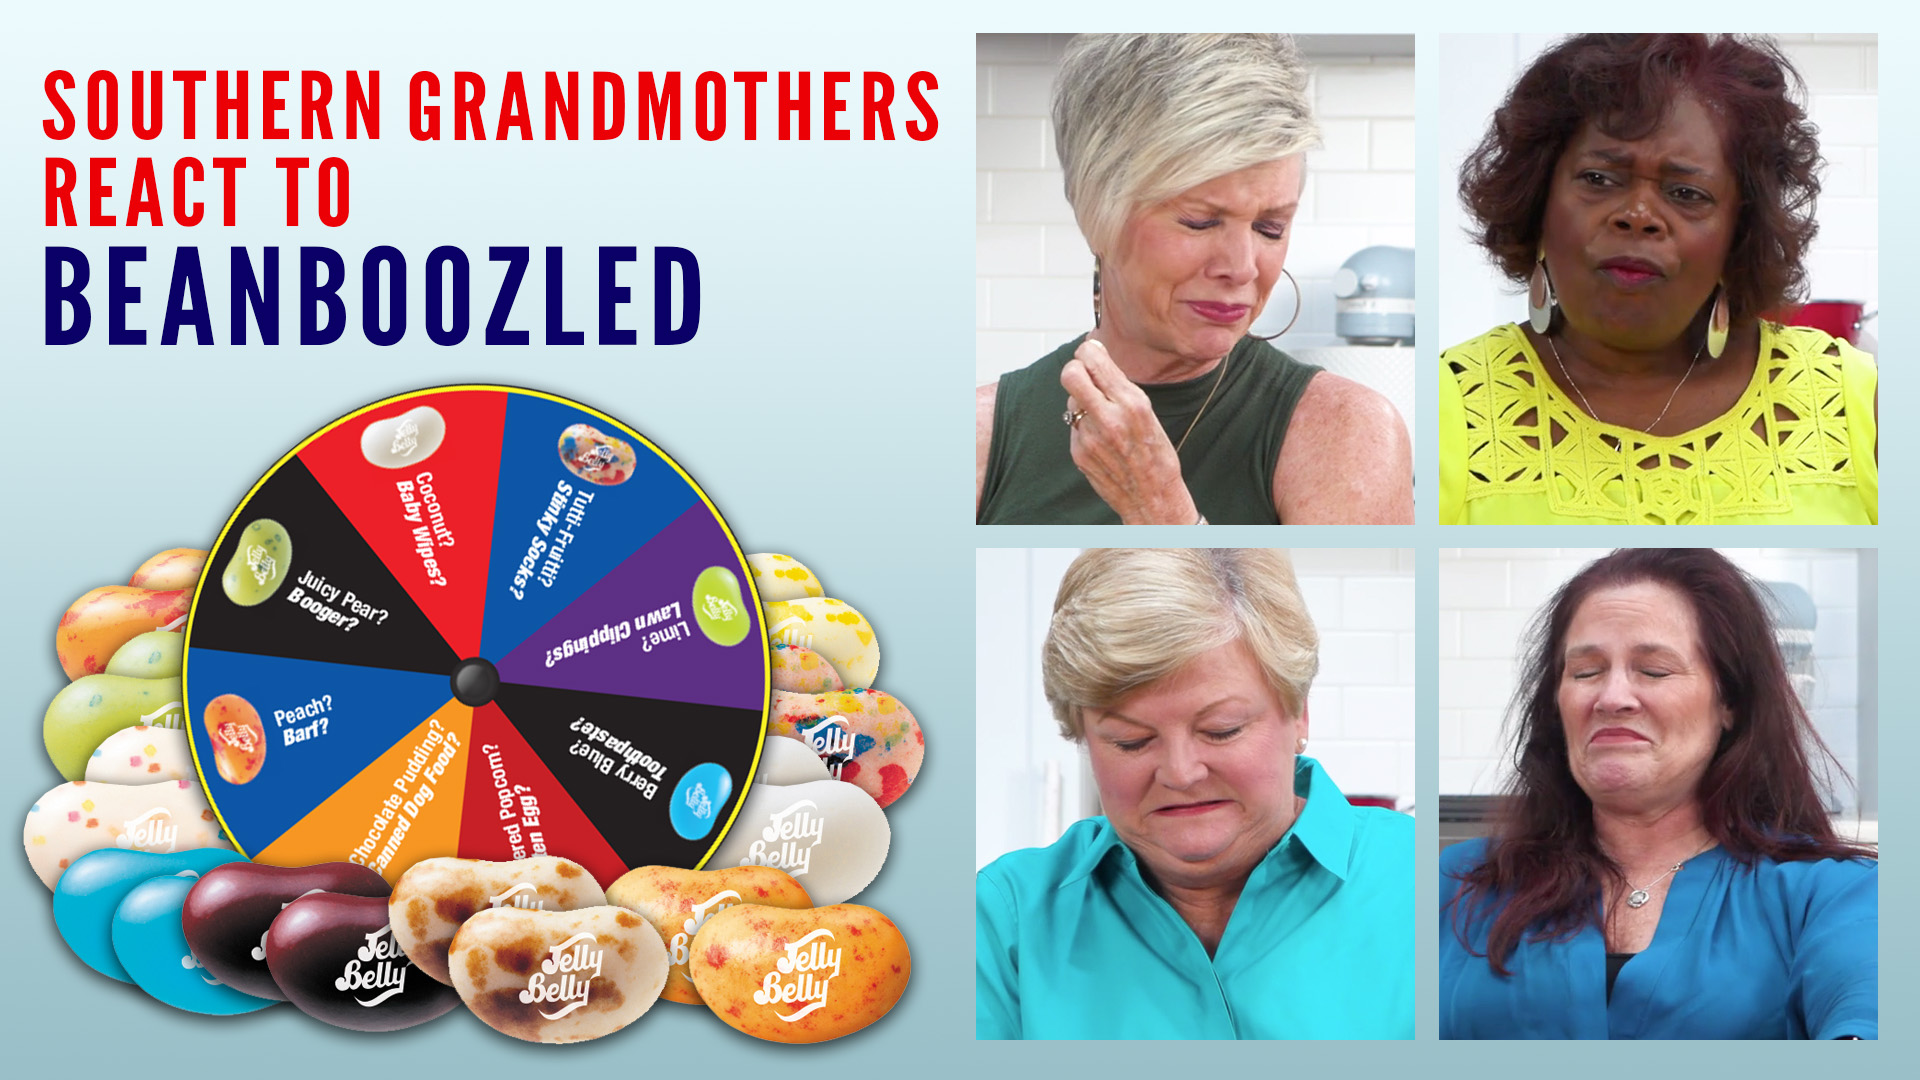 Southern Grandmothers React To Cringe-Worthy Jelly Beans and The Results are Hilarious